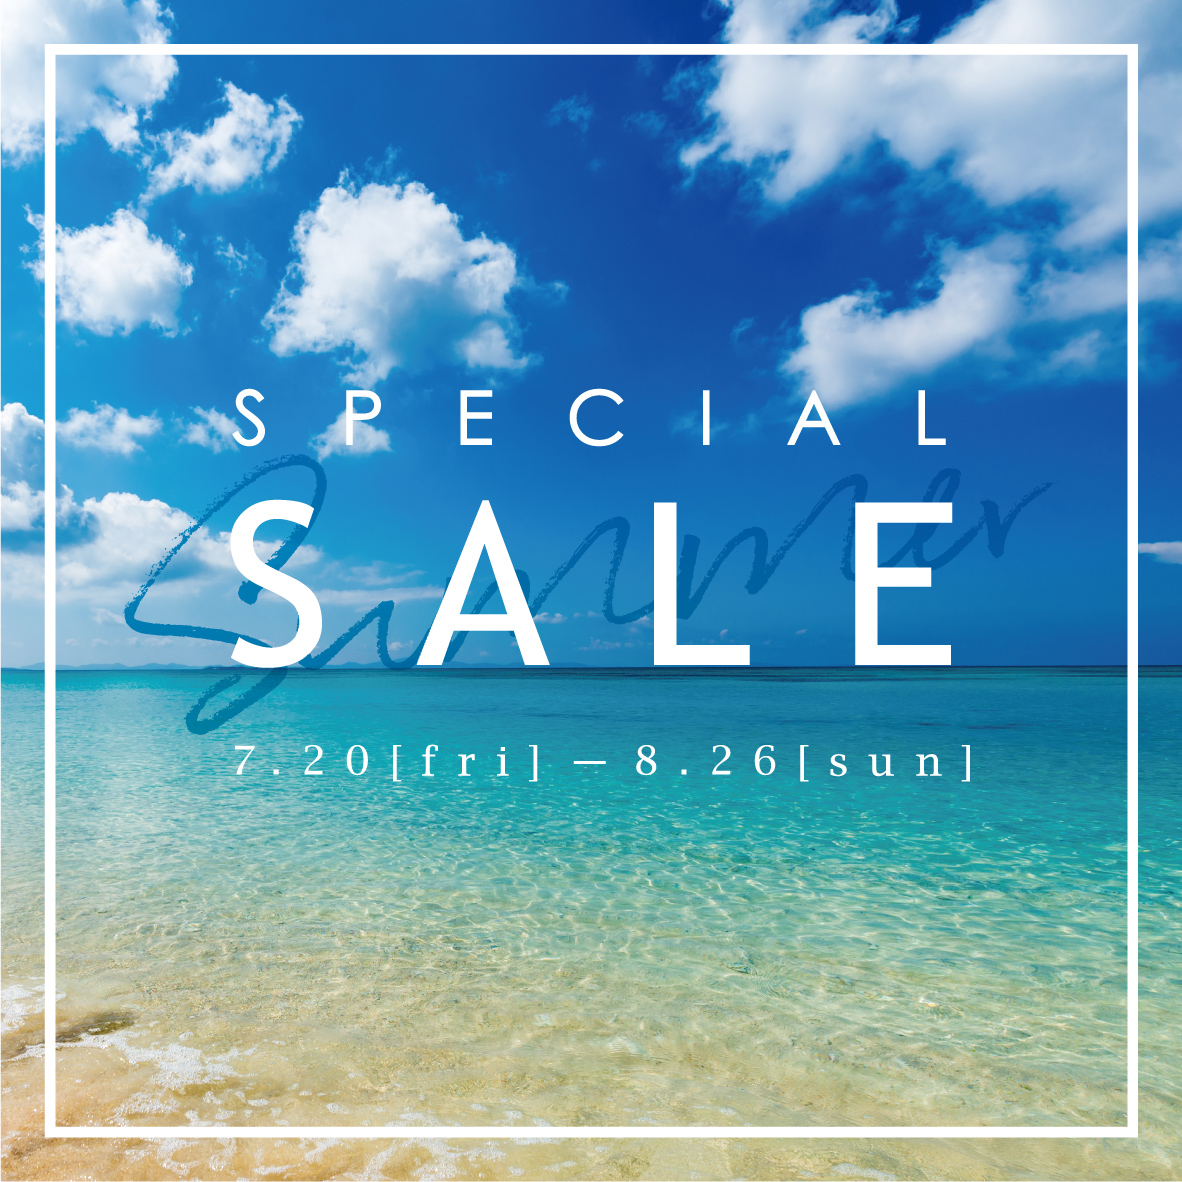 「SUMMER SPECIAL SALE」2018/7/20(金)~8/26(日)のご案内